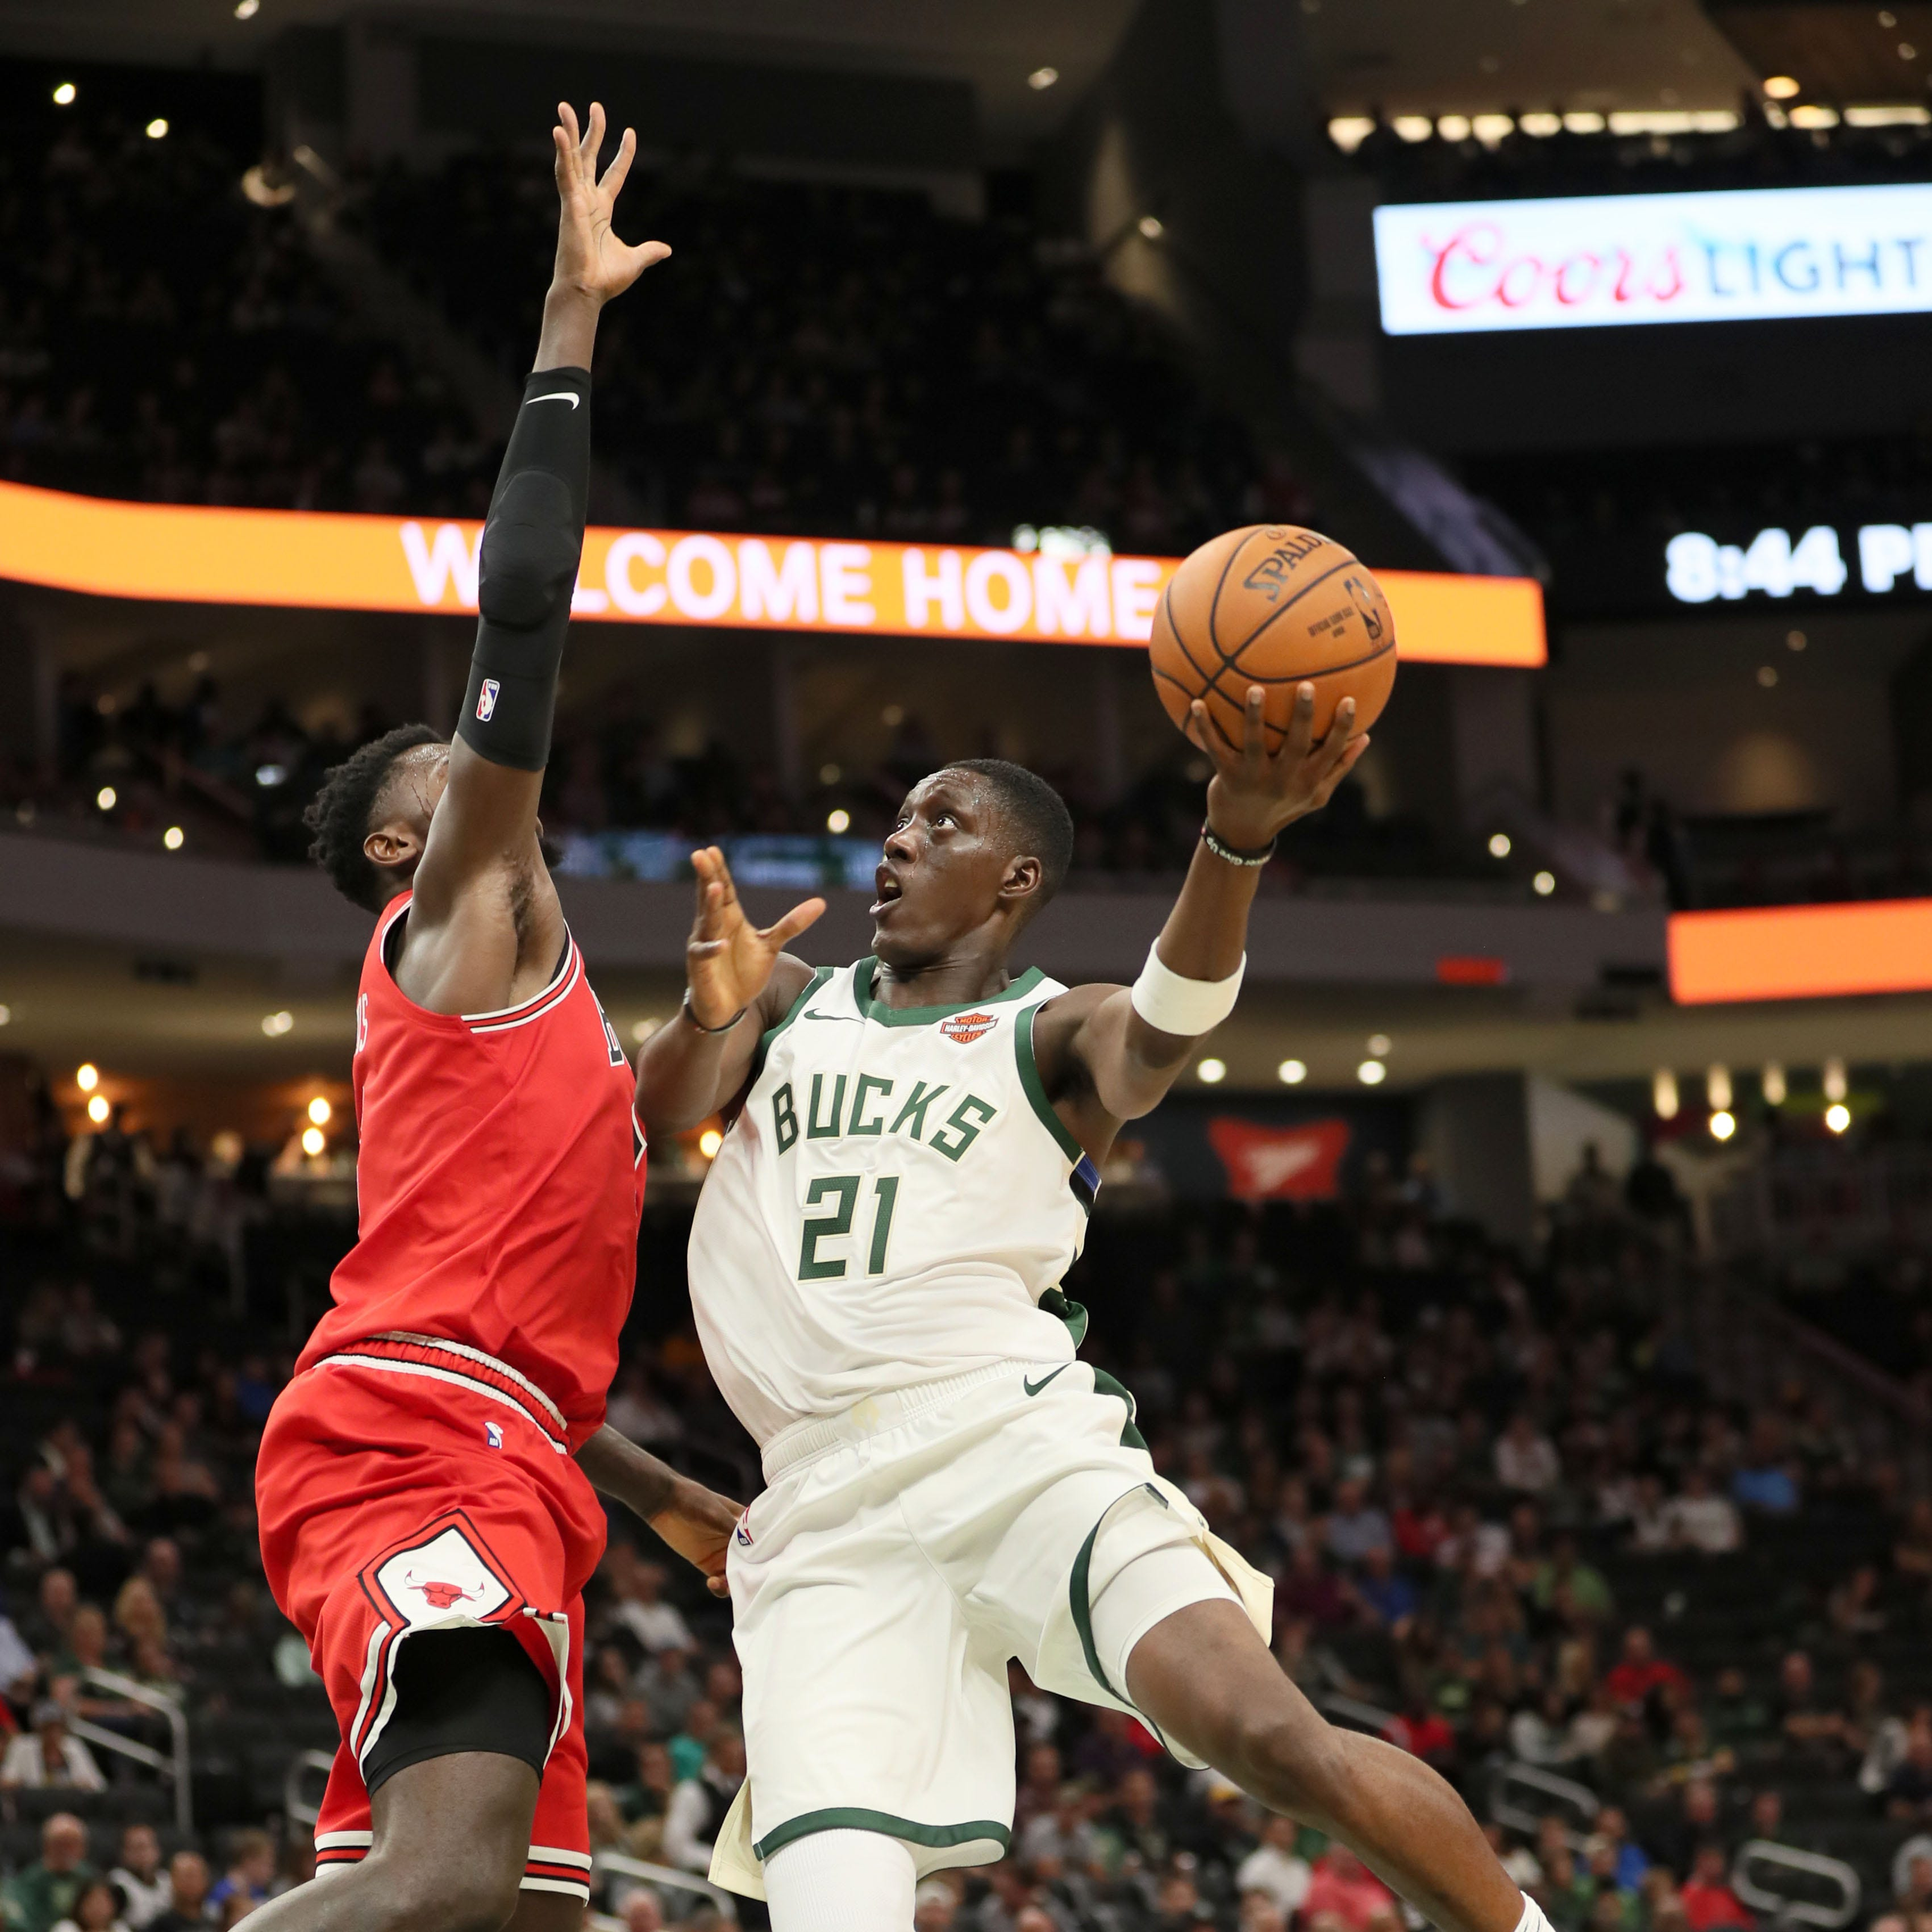 The Bucks' Tony Snell goes up for a shot against at Bulls defender on Monday night at Fiserv Forum.